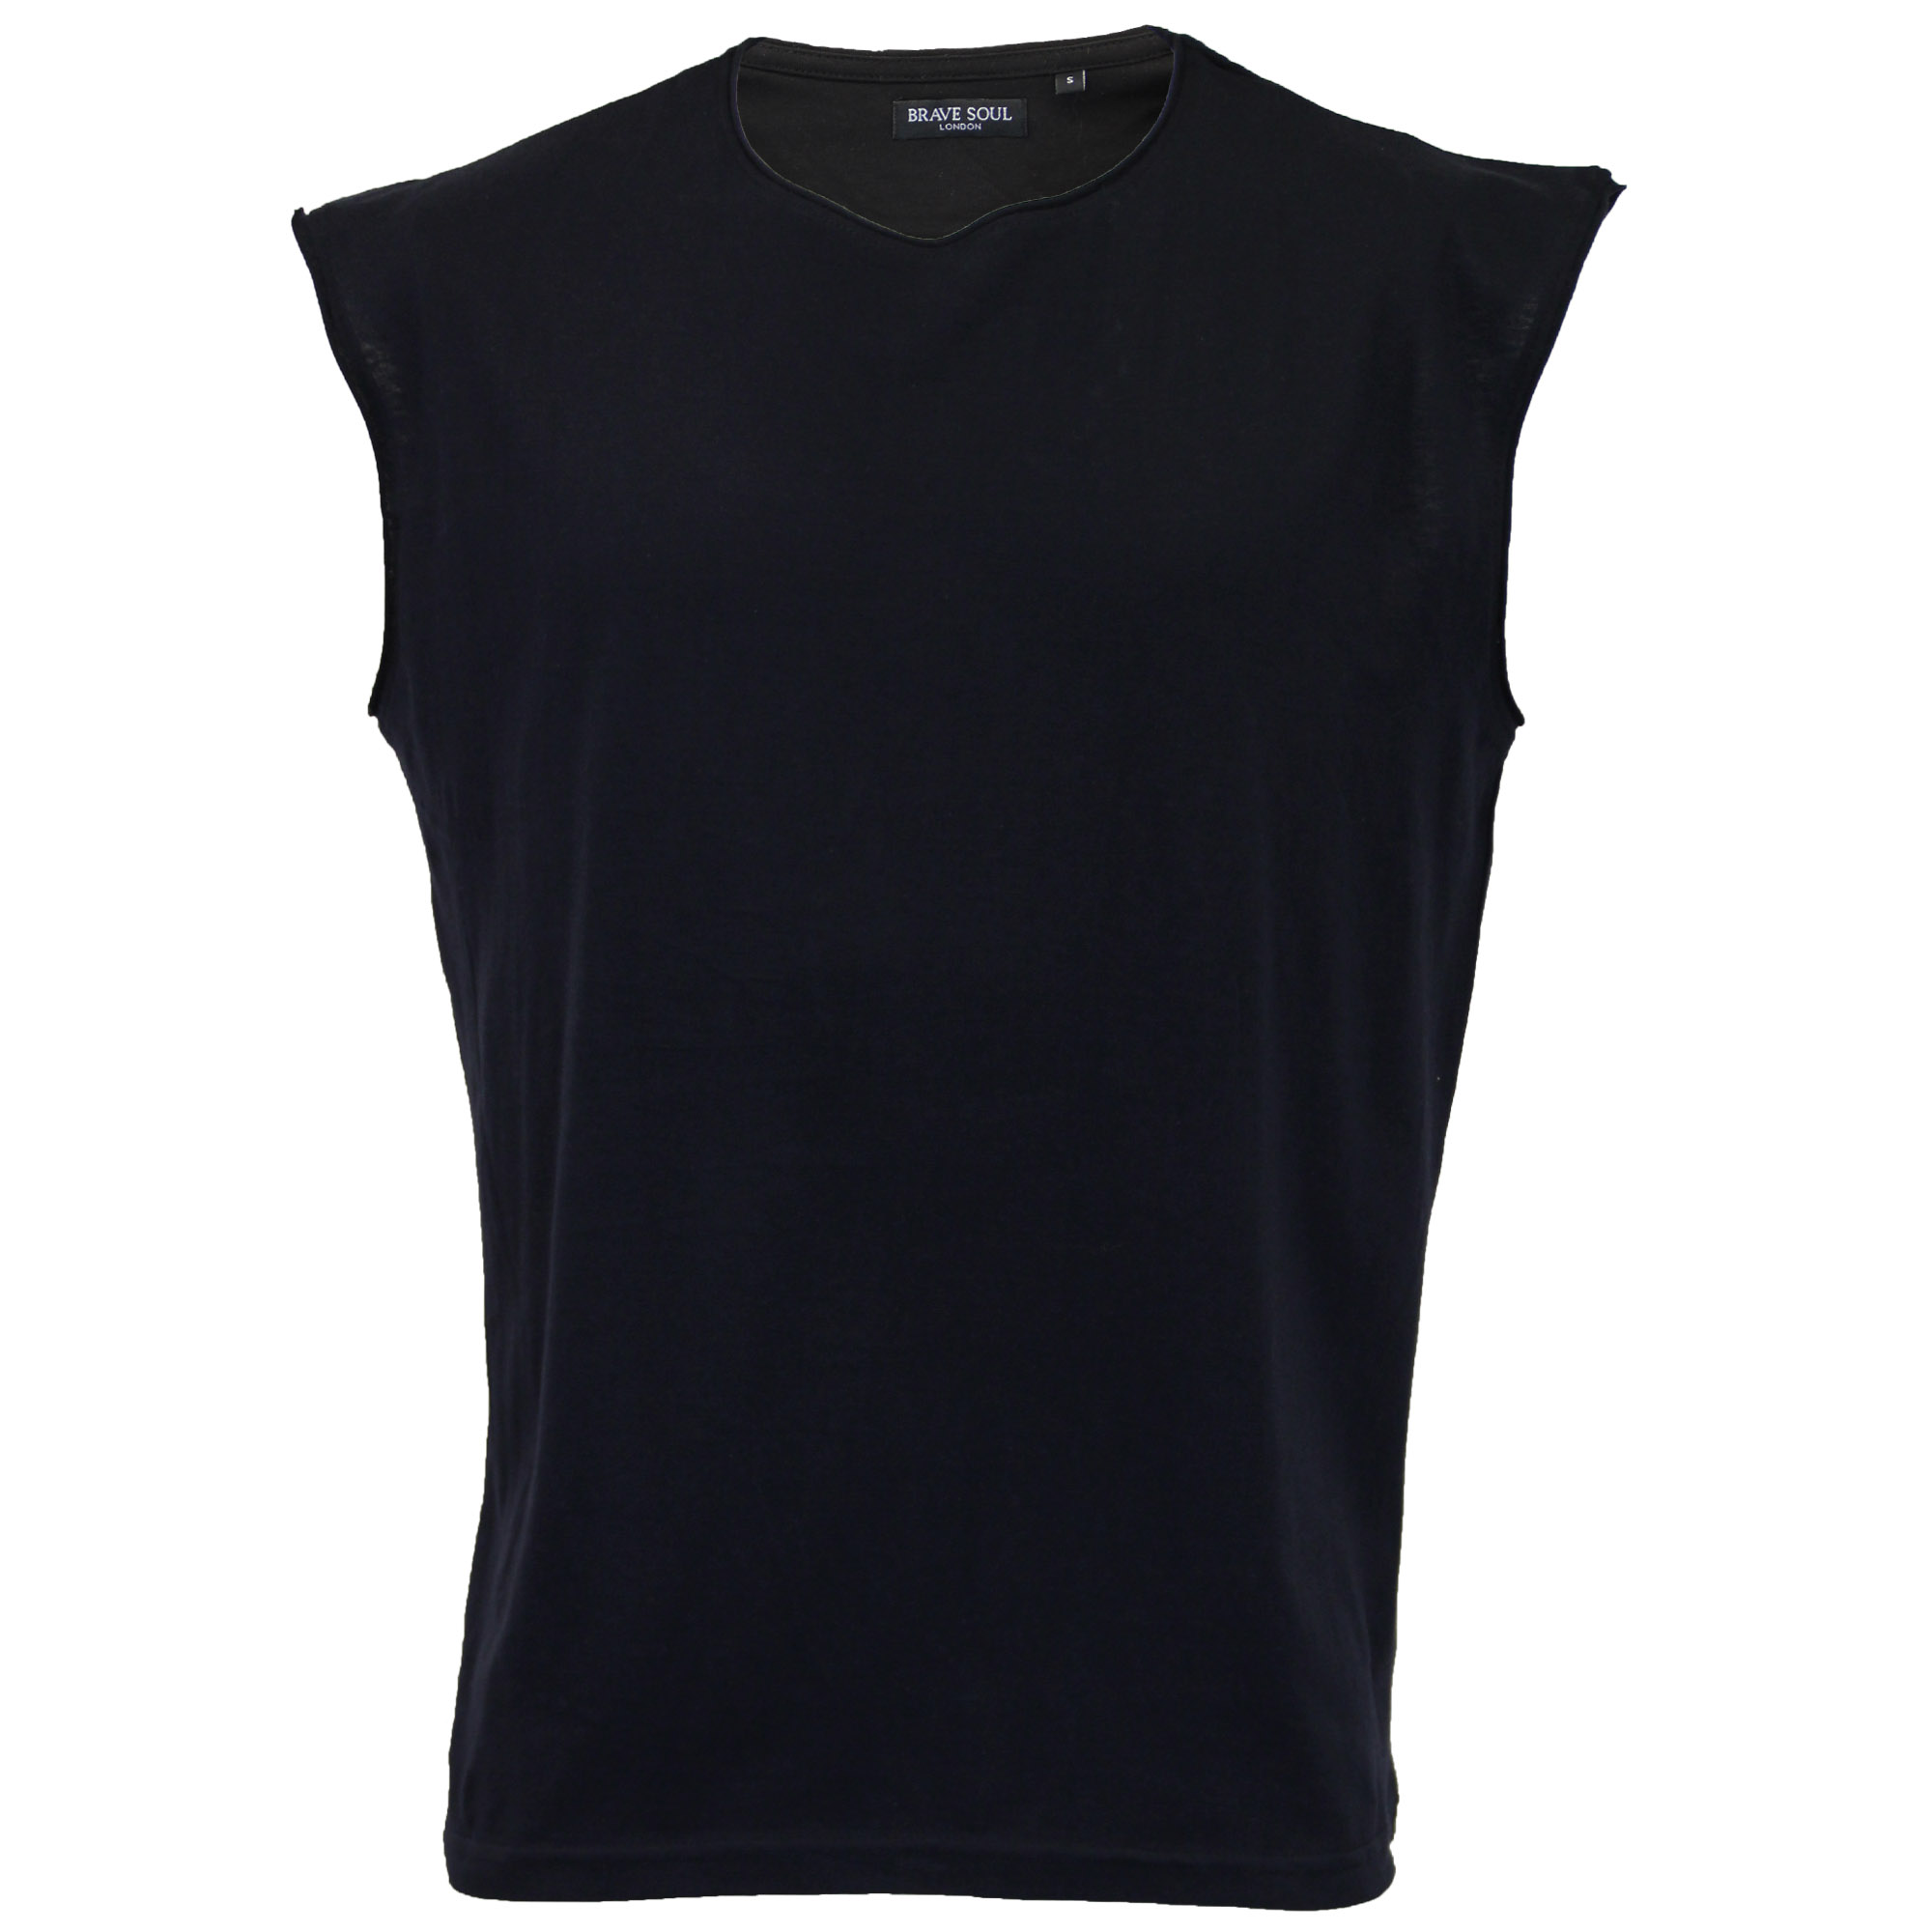 Mens-Vest-Brave-Soul-Tank-Top-Varley-Gym-Training-Crew-Neck-Casual-Summer-New thumbnail 2